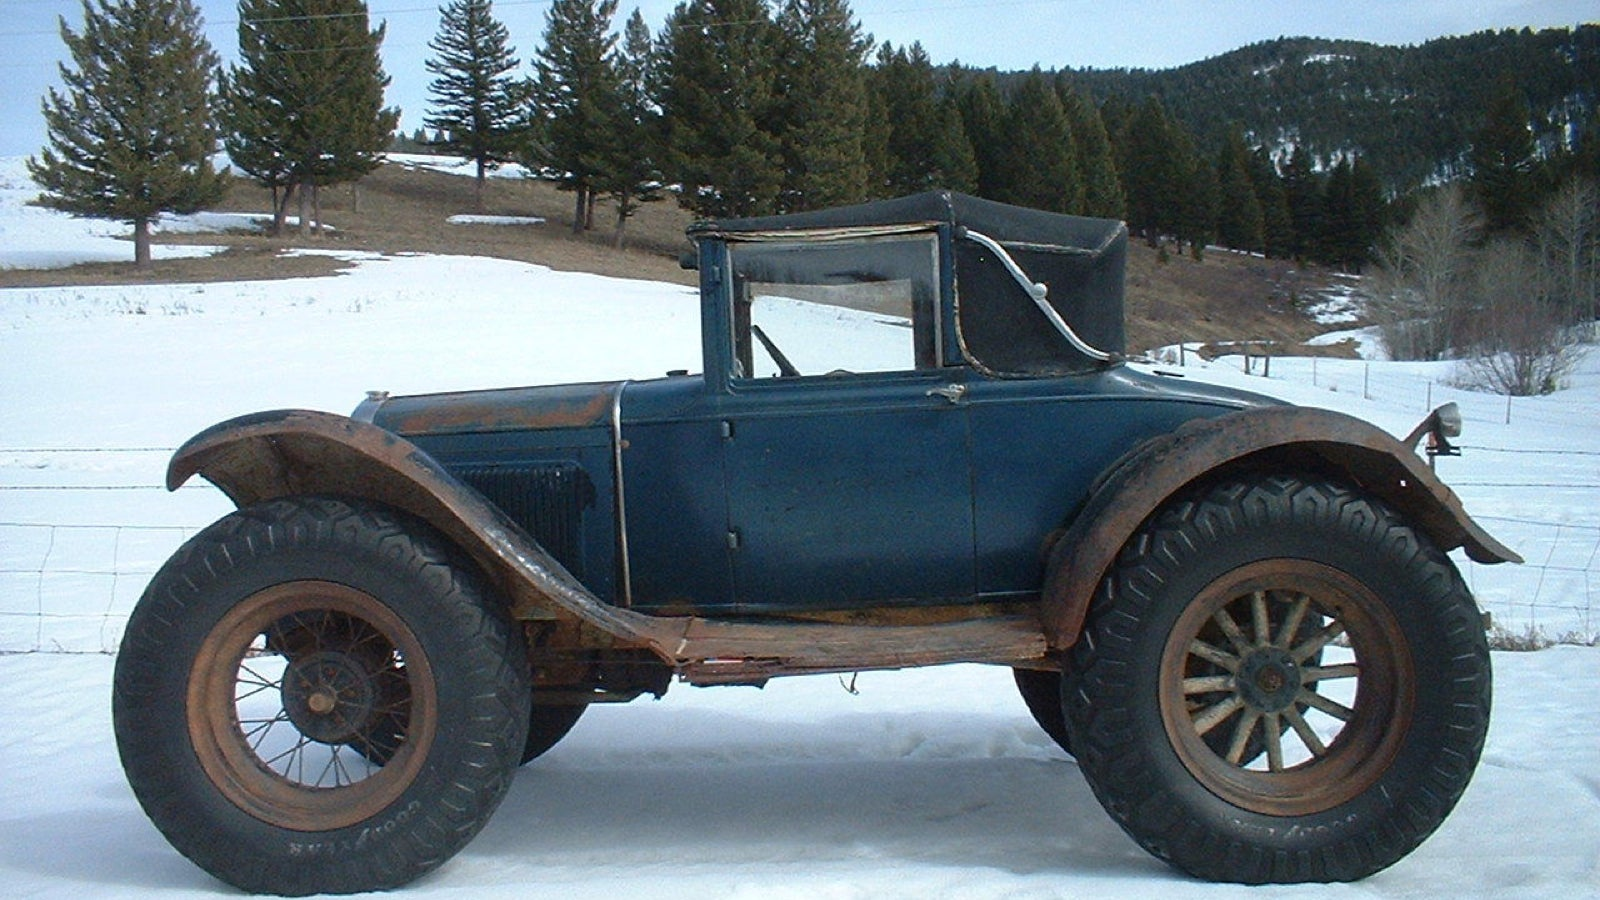 & The Oral History Of An Amazing 1930 Ford Model A Off-Road Mail Truck markmcfarlin.com